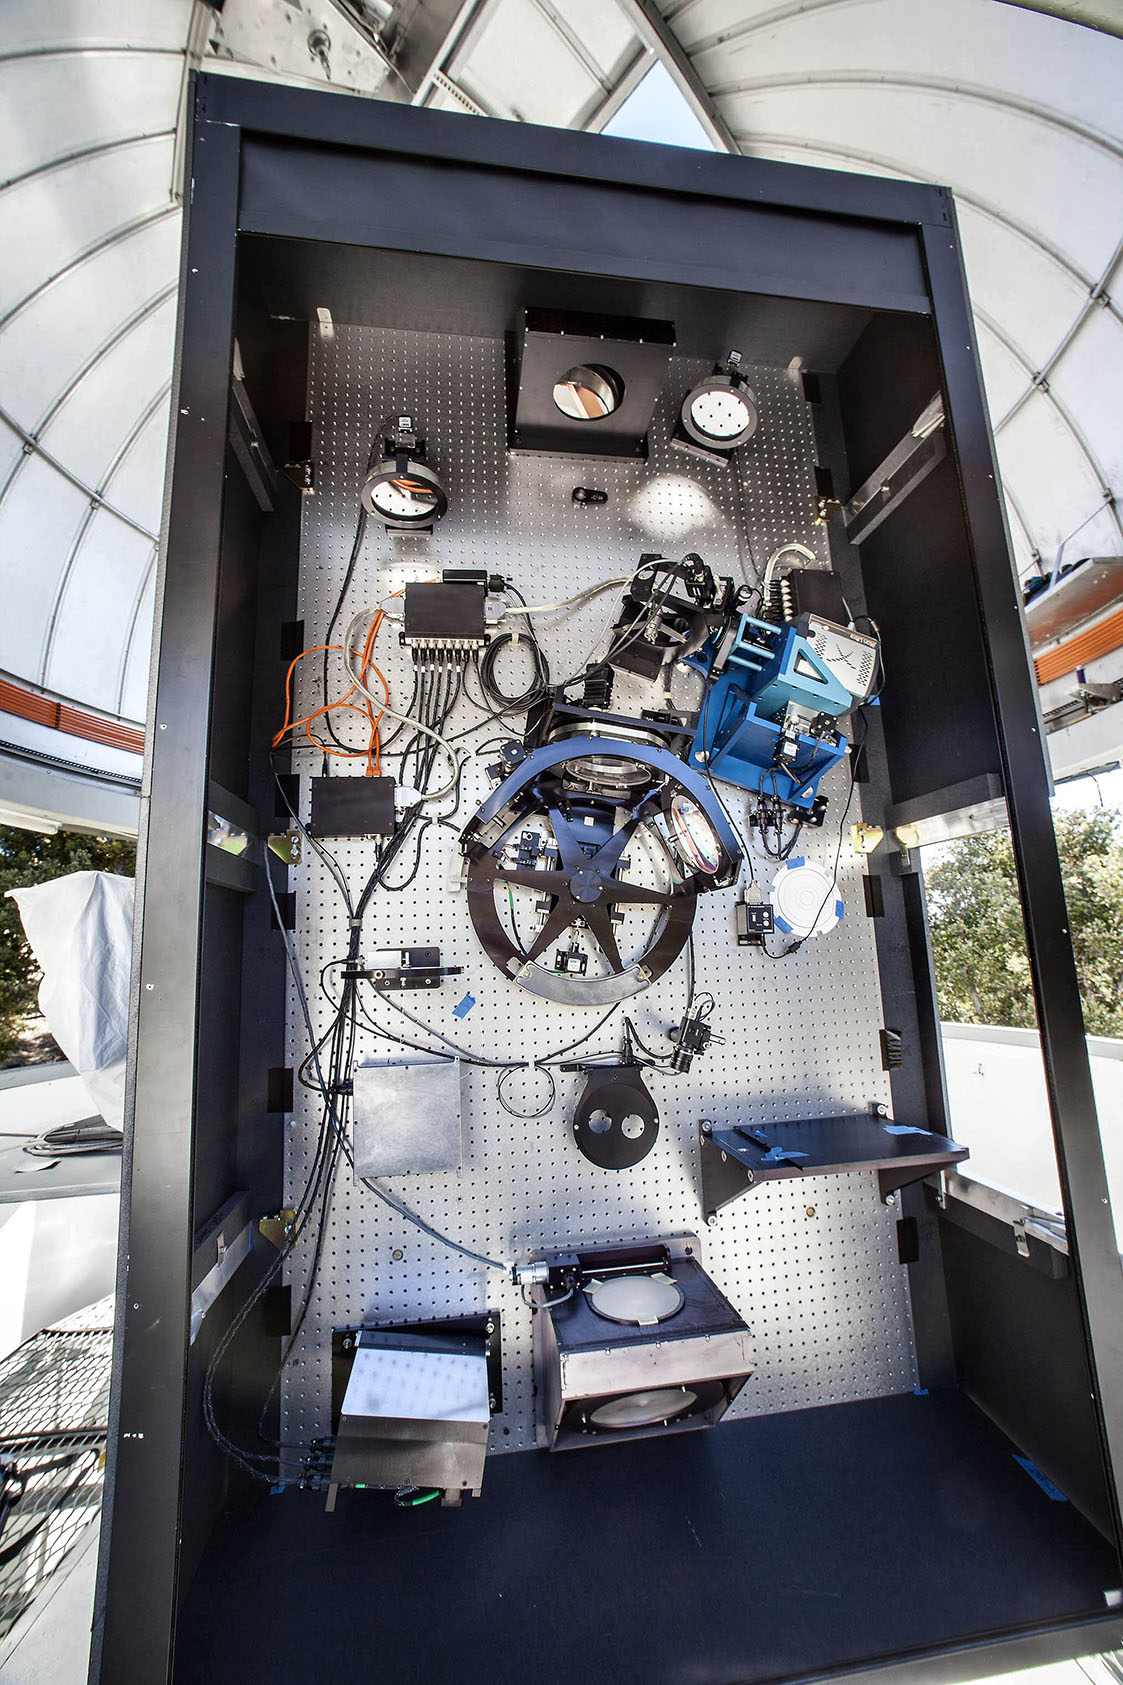 Installation of adaptive optics bench on the CHARA telescopes.